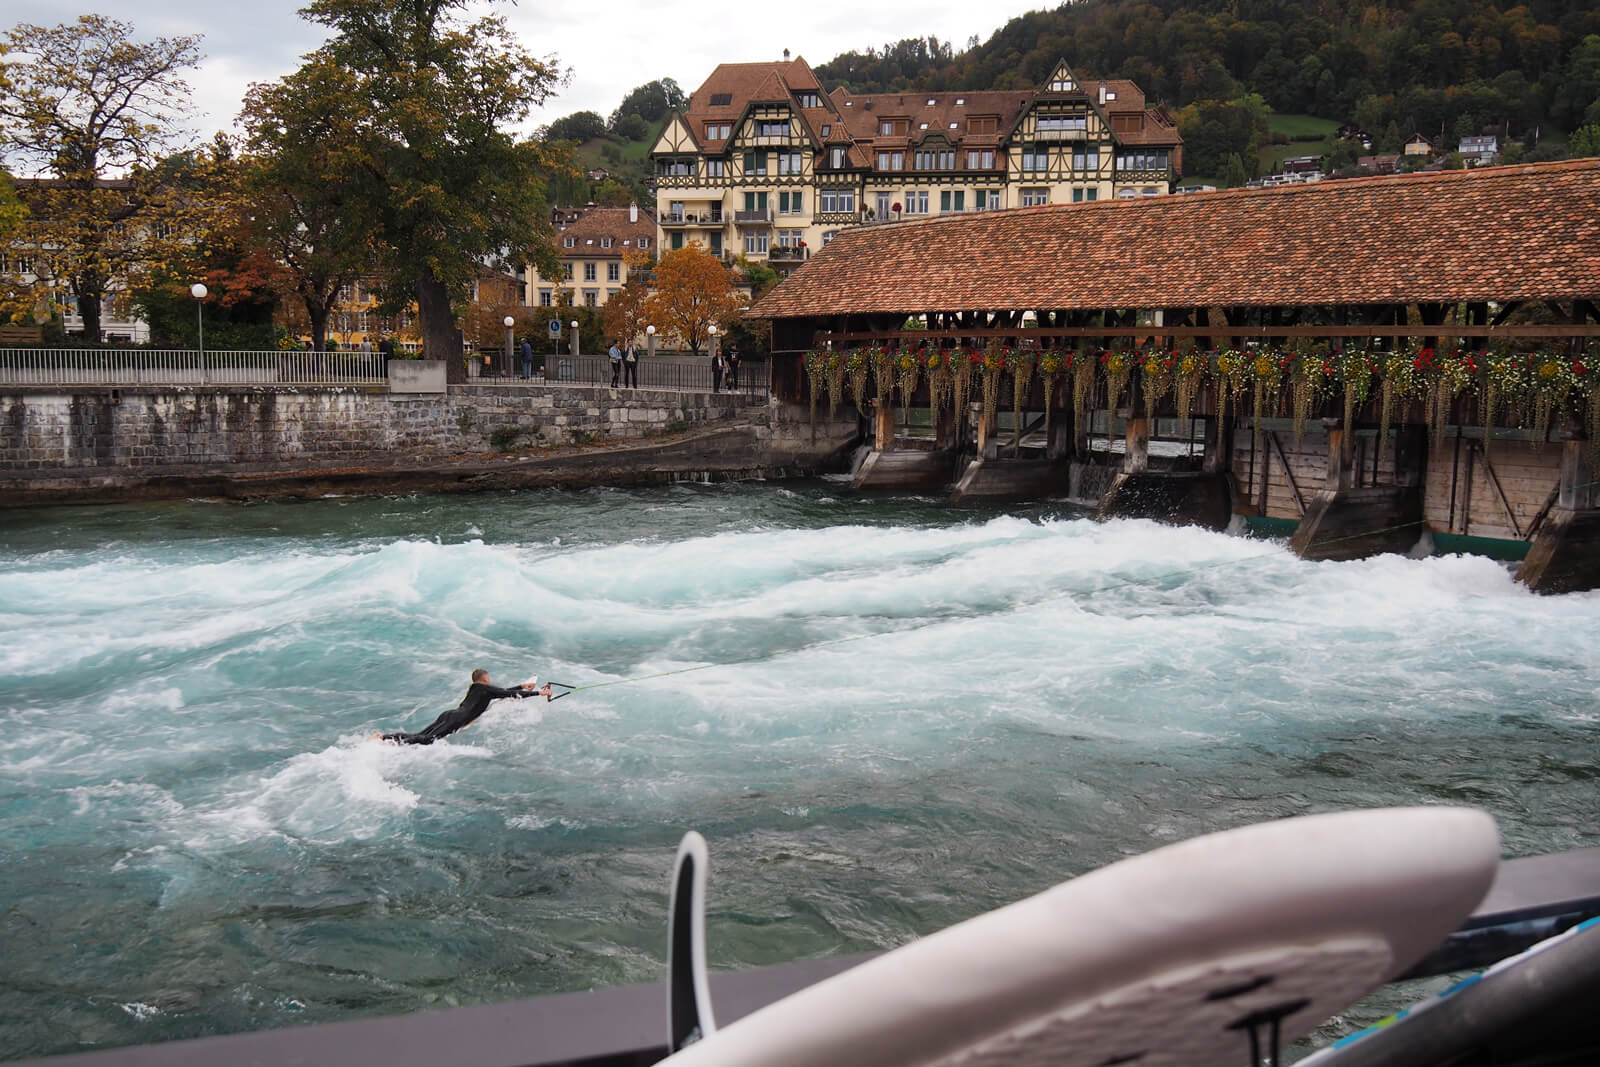 Surfers on the River Aare in Thun, Switzerland